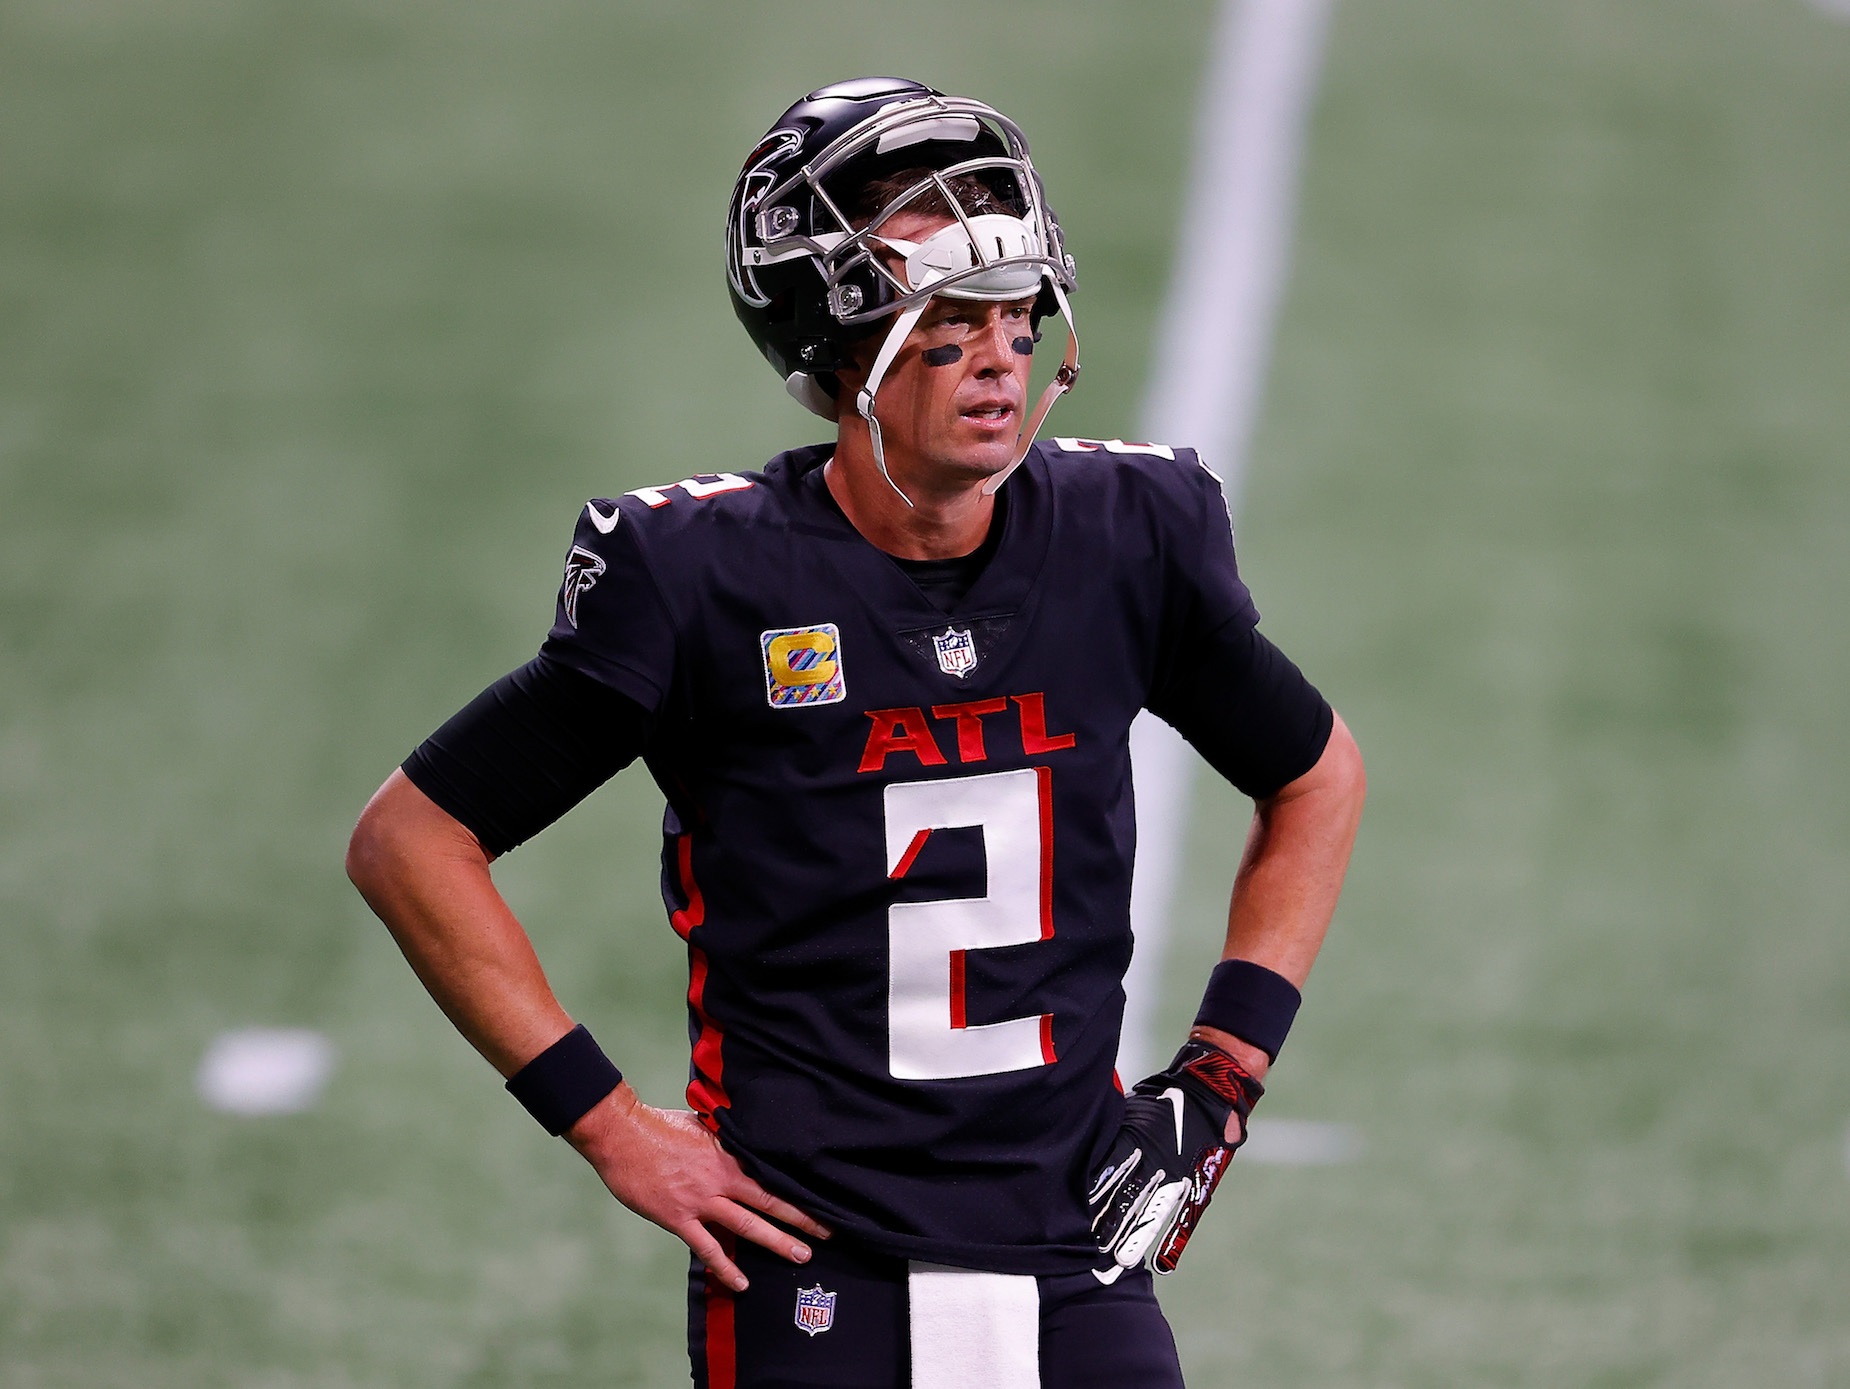 The Atlanta Falcons May Have Just Revealed Their Next Major Change, and It Could Involve Matt Ryan